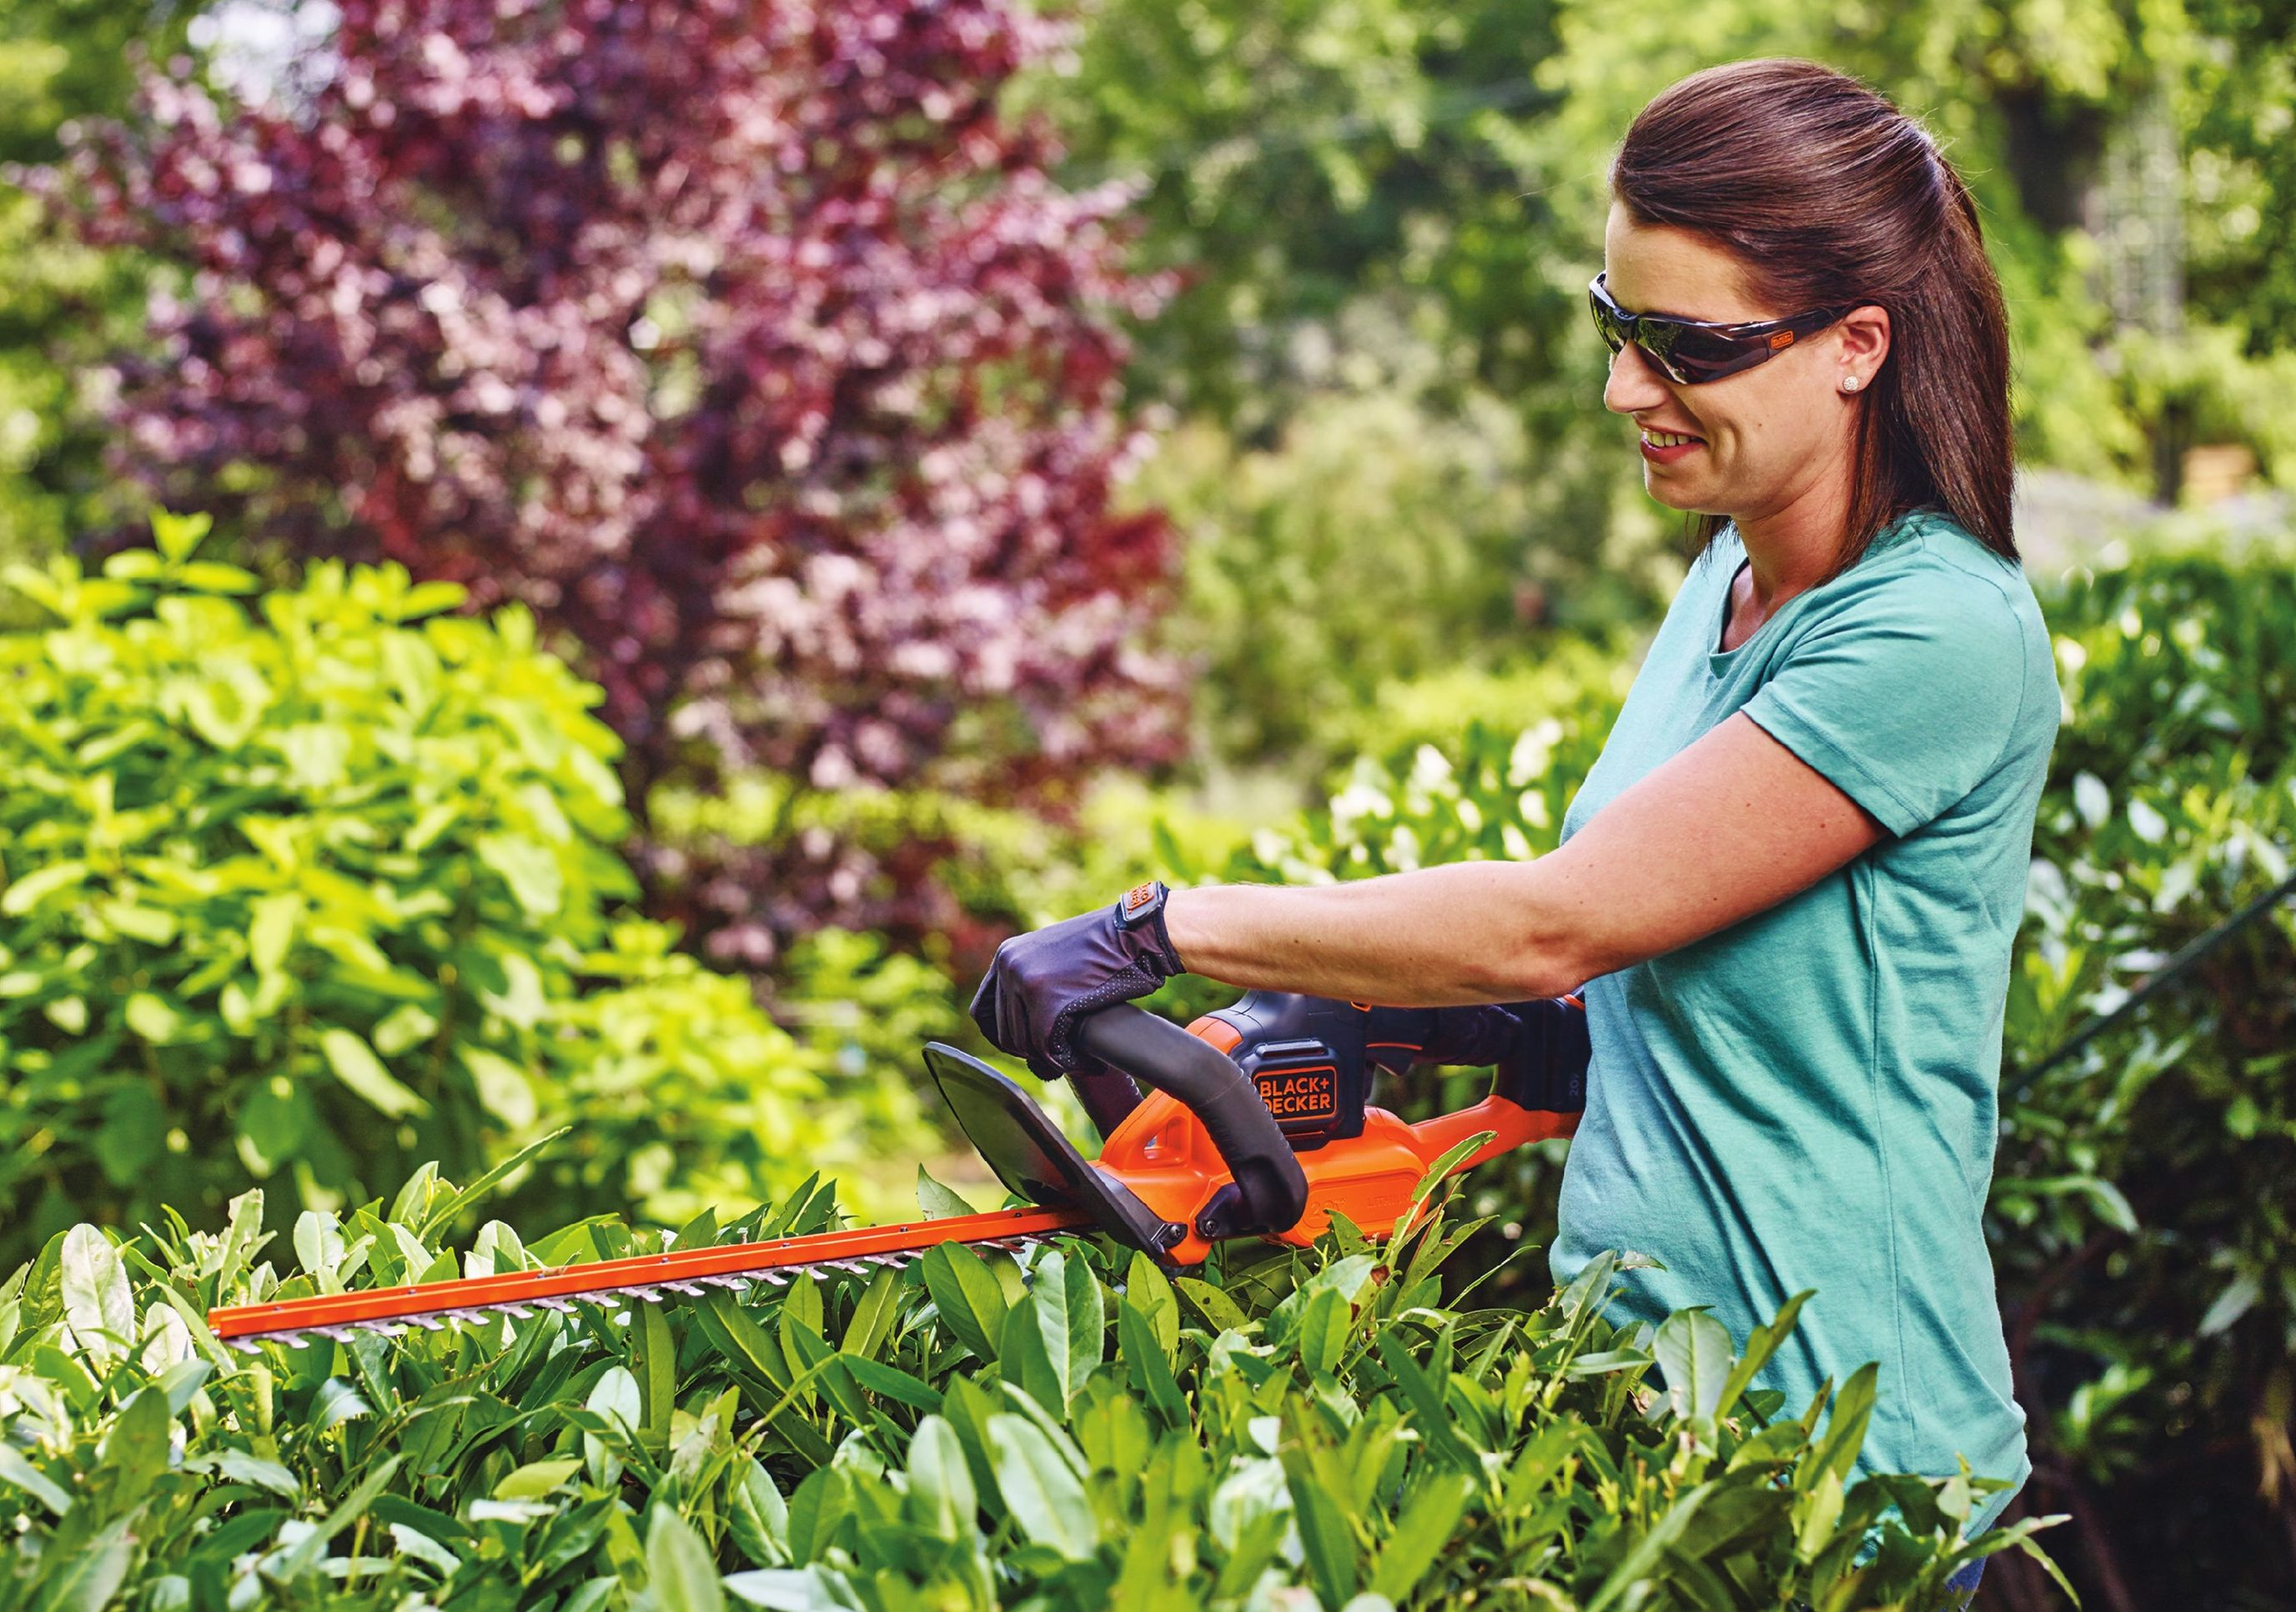 Electric hedge trimmers are lightweight, powerful, affordable and quiet. However, your working range is limited by the length of the extension cord.